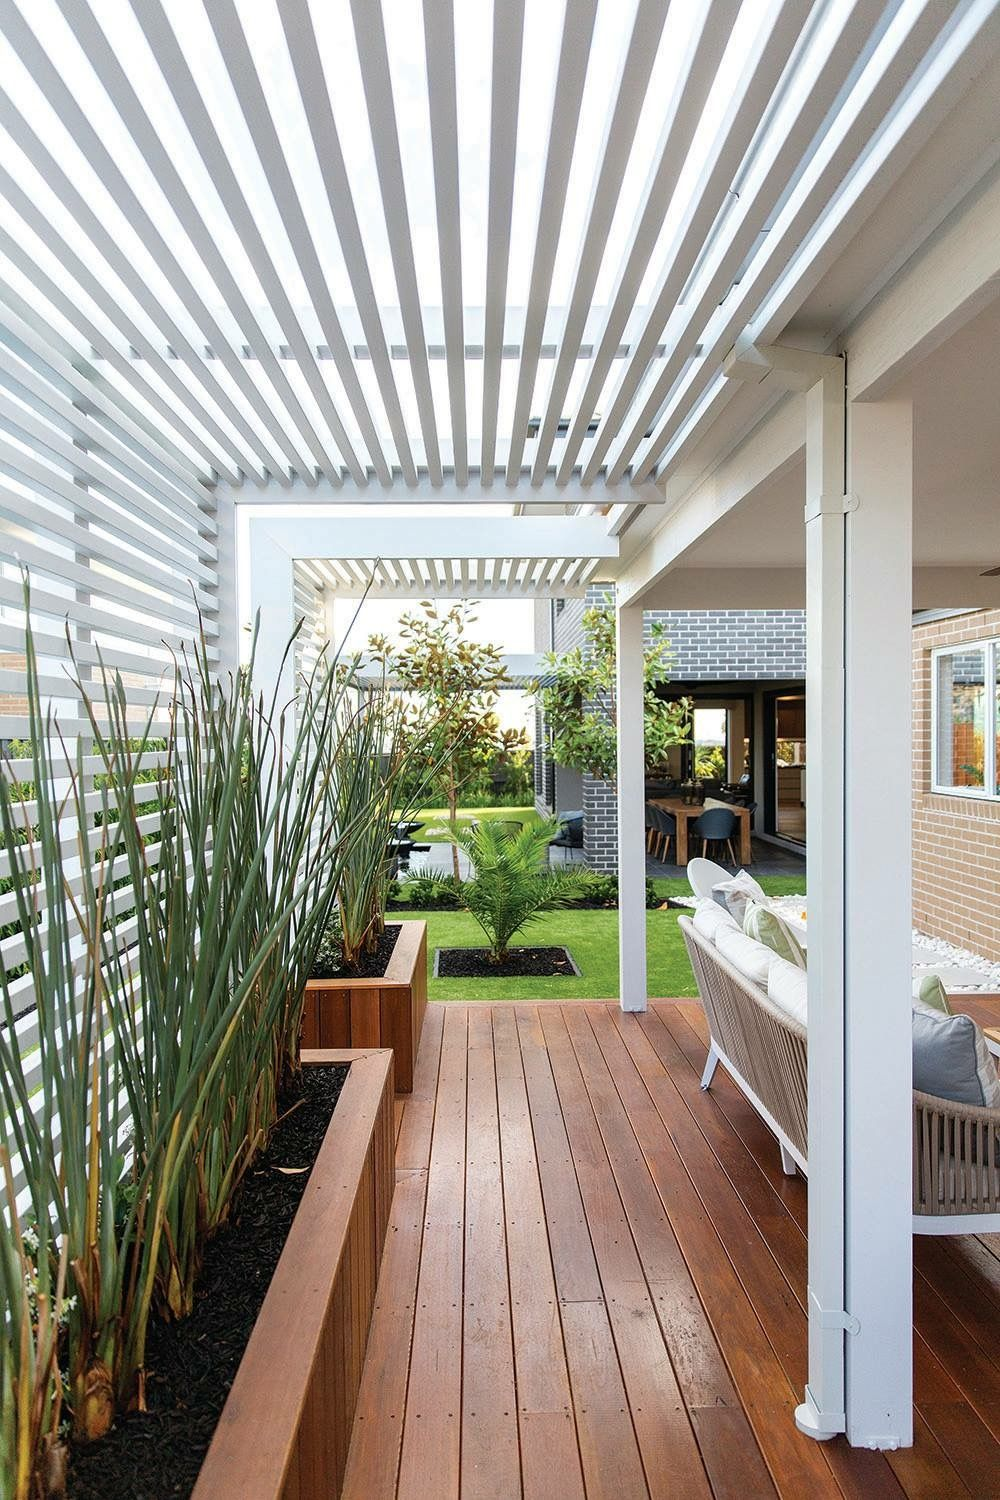 Cool Inspiration For A Deck On The Back Of Your Home If It Faces Busy